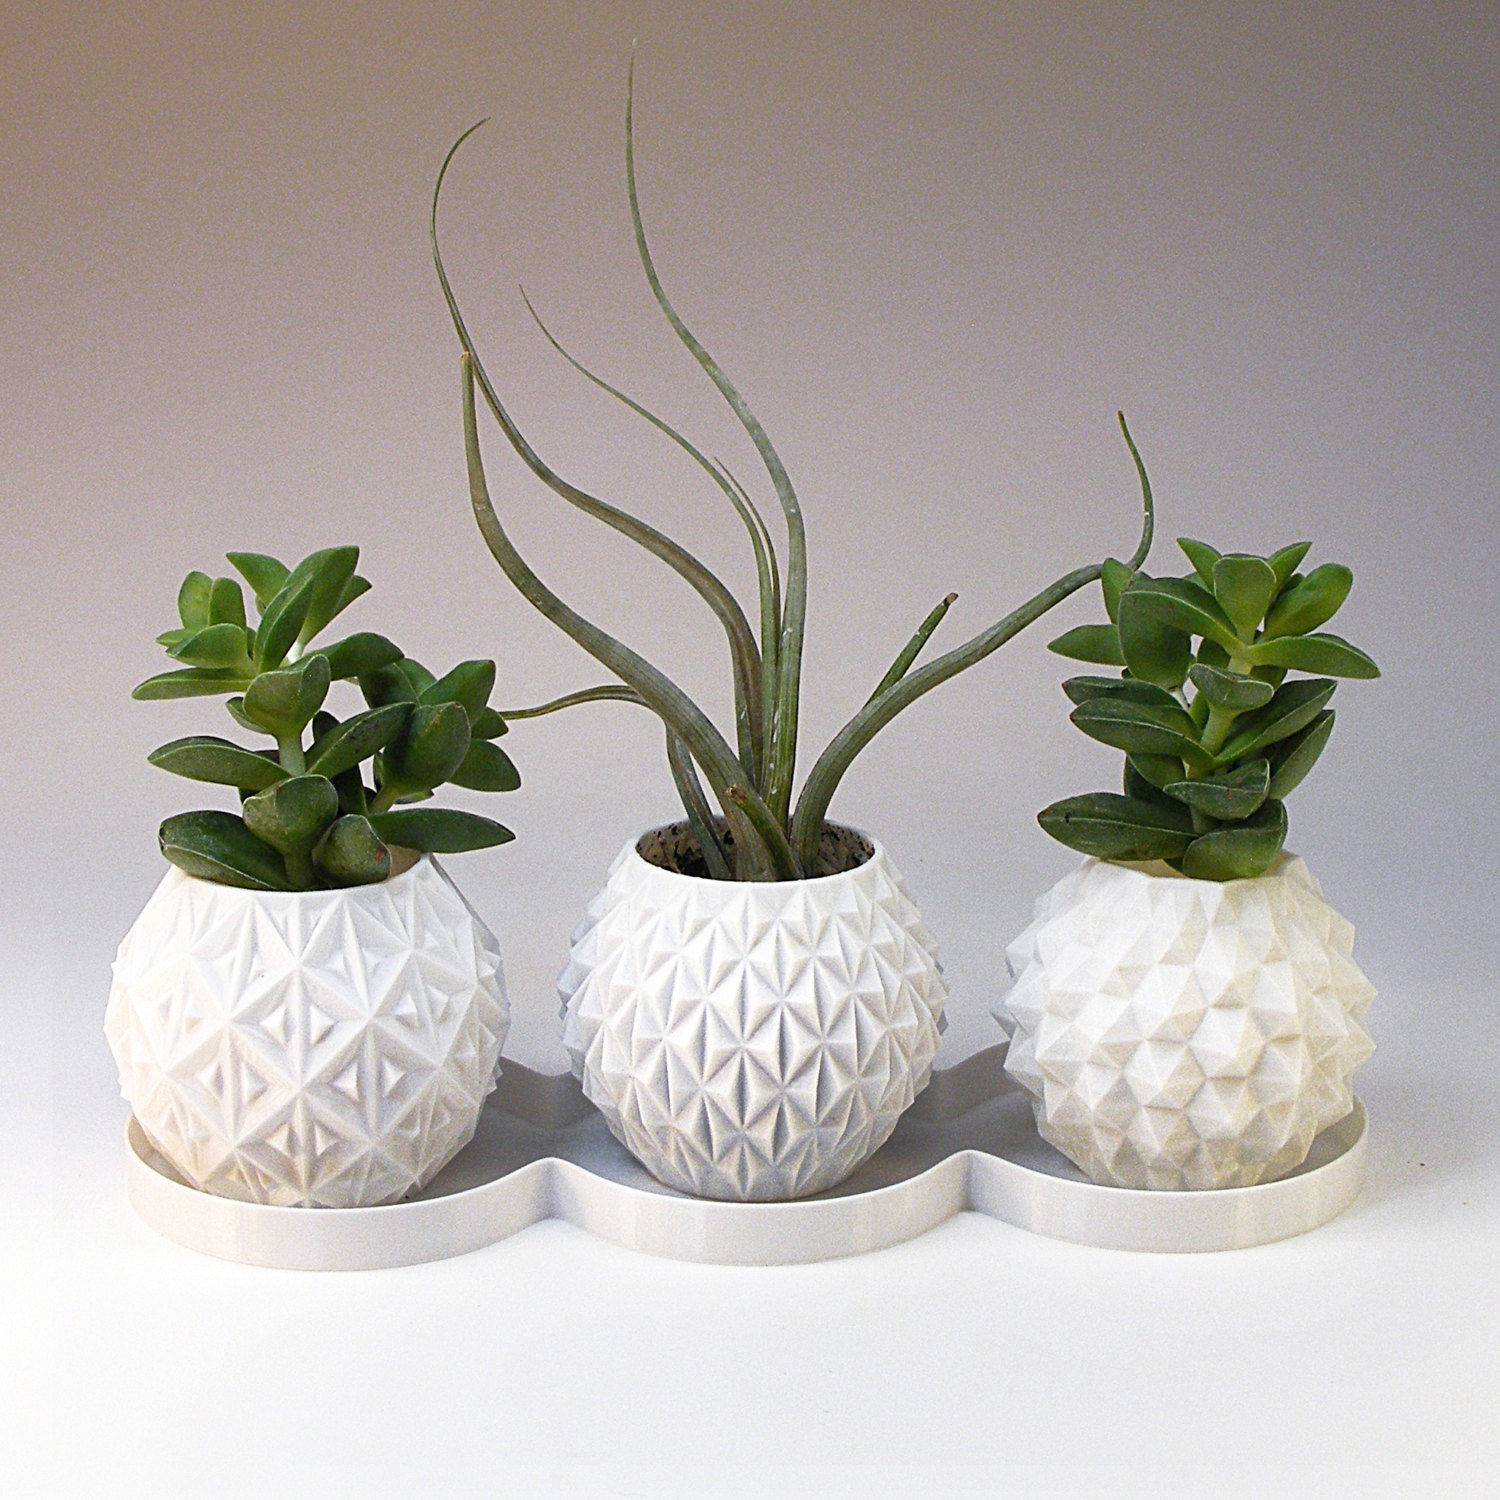 Succulent Planter Geometric Planter Set of 3 Small Office Gift